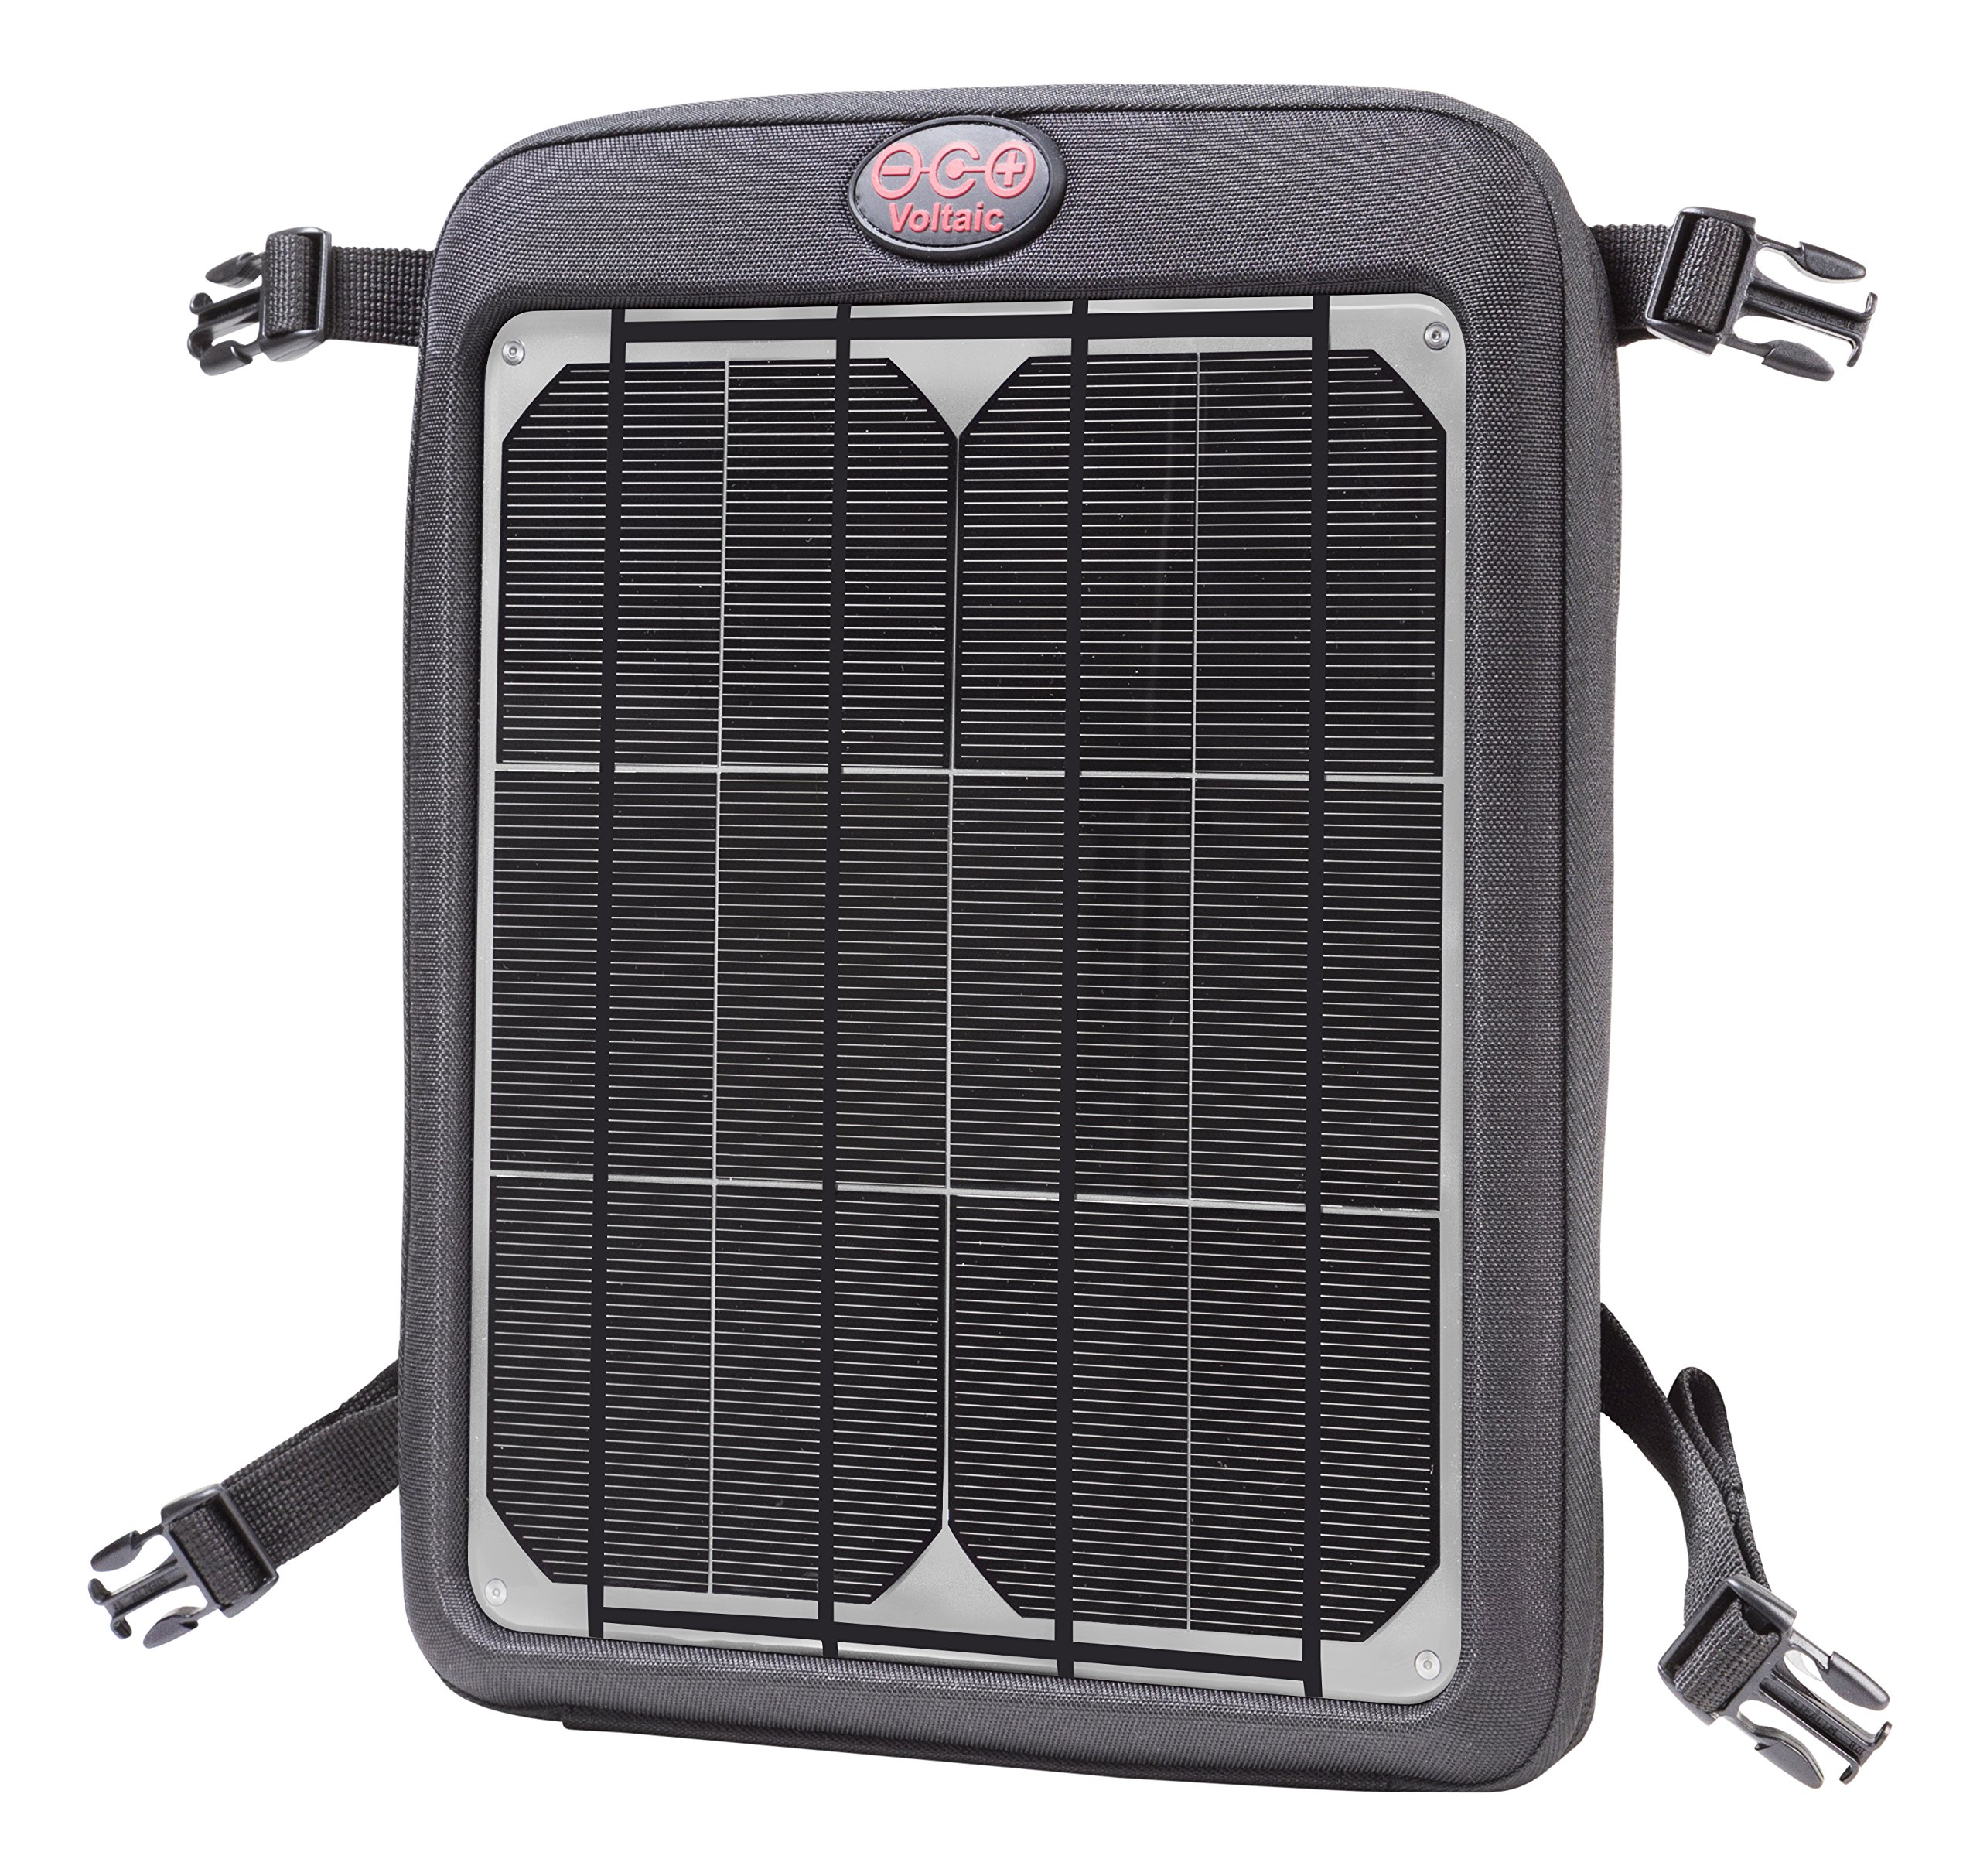 Votlaic Systems Fuse 9W Portable Solar Charger with Battery Pack (Dual USB, 12,000mAh) - Silver